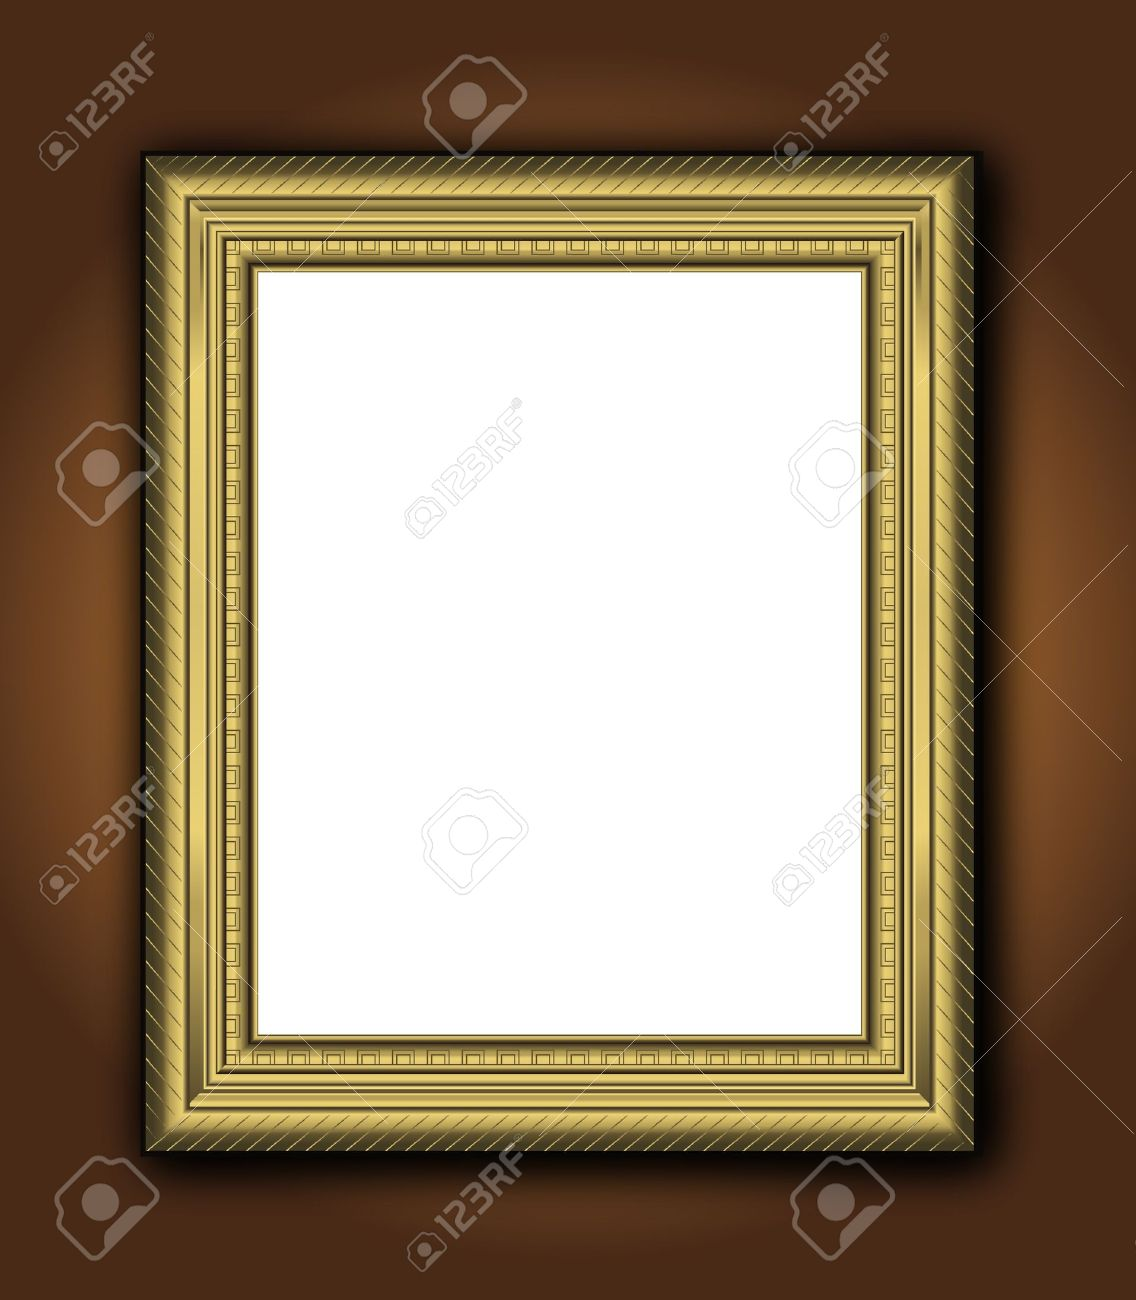 Frame old antique gold Baroque vintage picture classic vector Stock Vector - 9931715